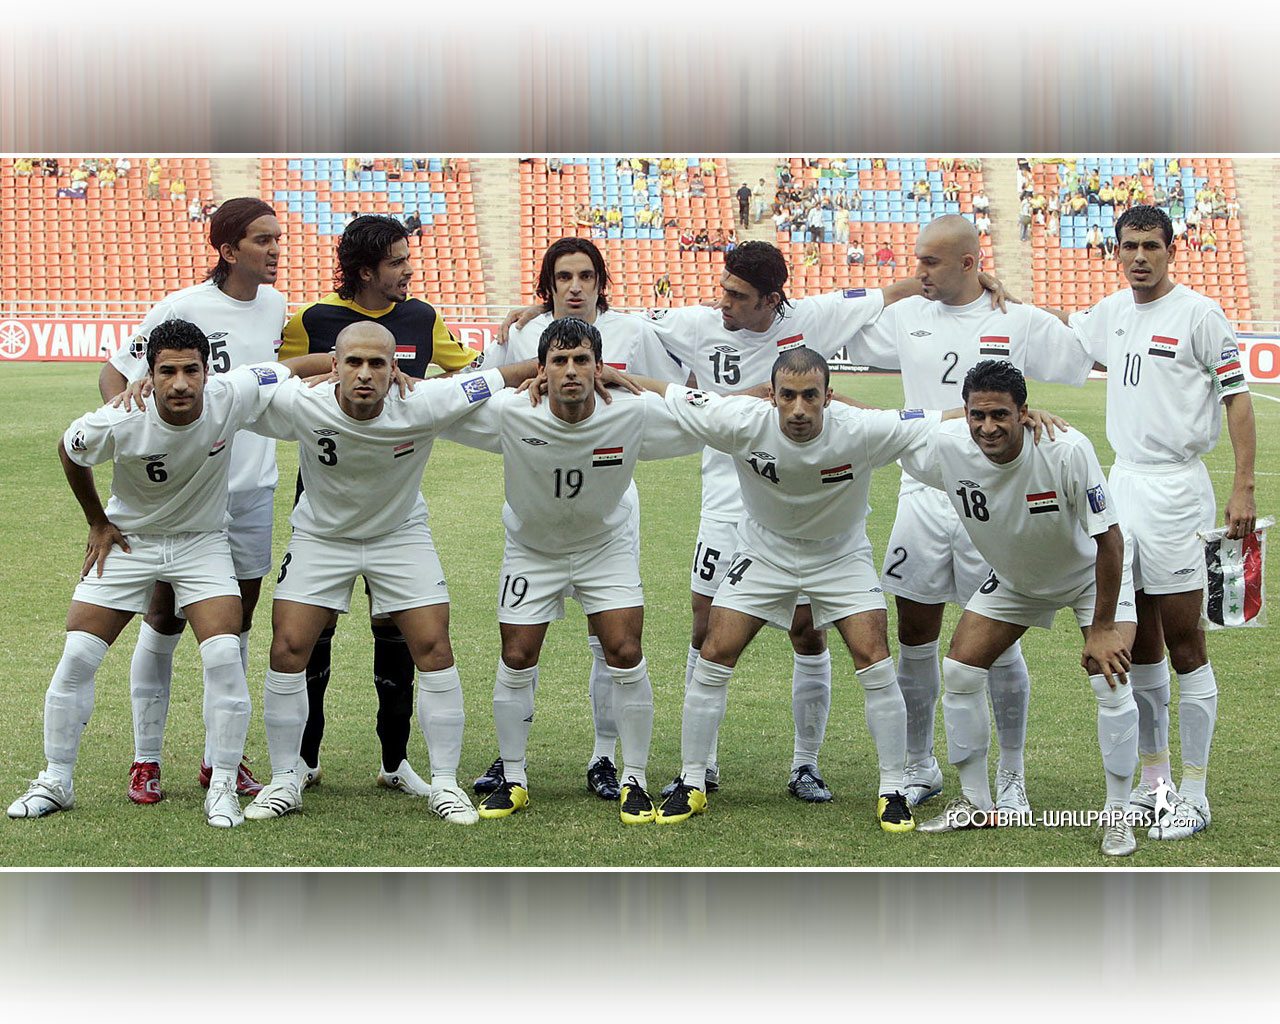 Iraq National Team Wallpaper 1 Football Wallpapers and 1280x1024